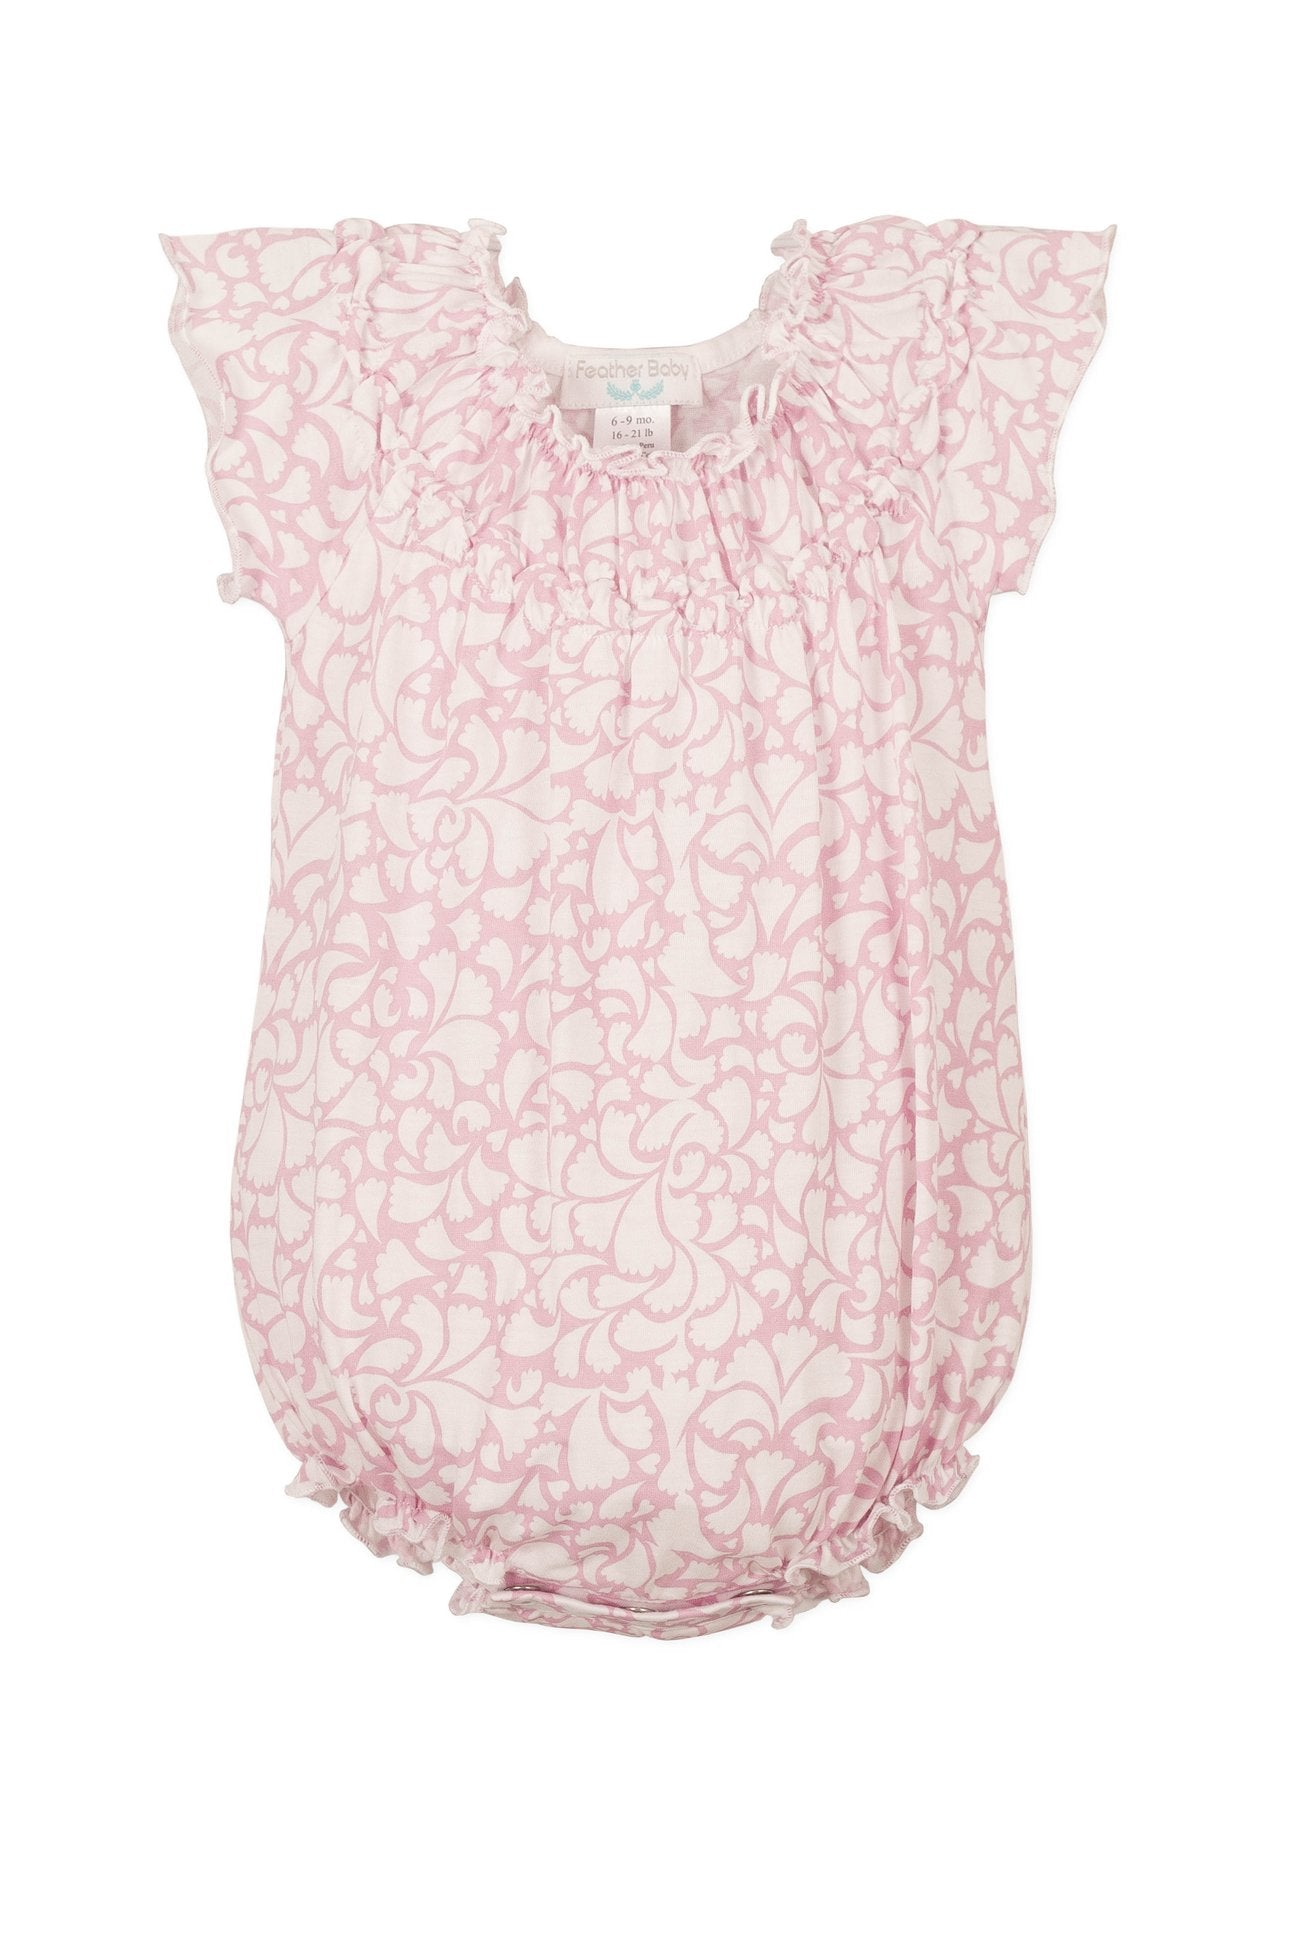 Ruched Bubble Big Floral - Pink on White